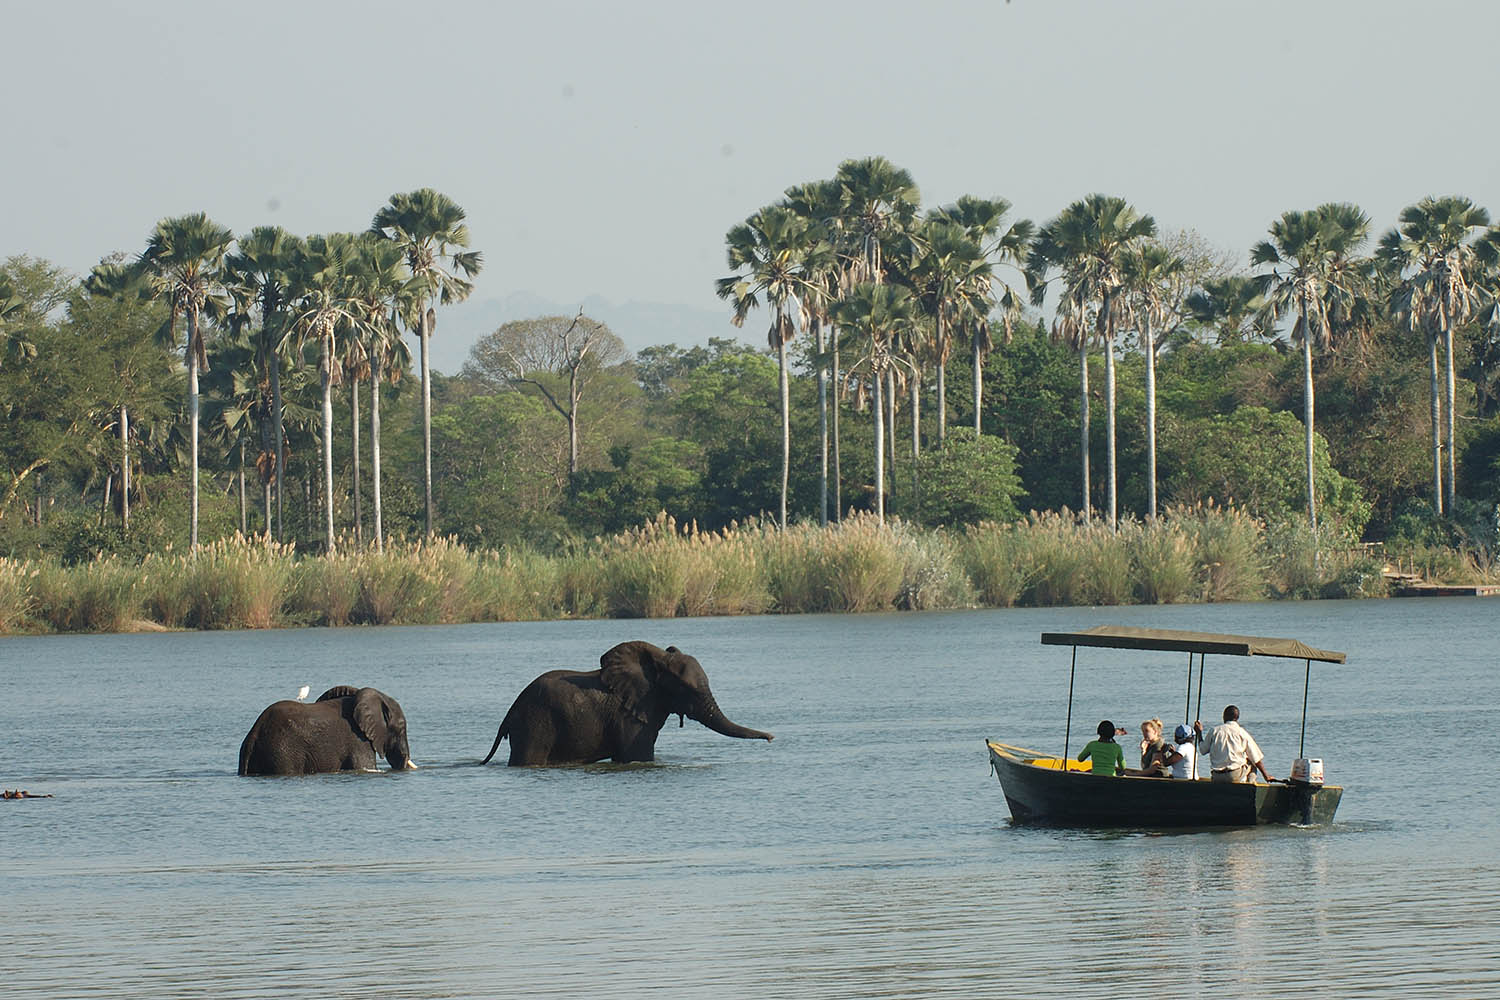 liwonde national park malawian-style-malawi-adventures-experiences-holidays-specialist-tour-operator-malawi-national-parks-reserves-boat-safari